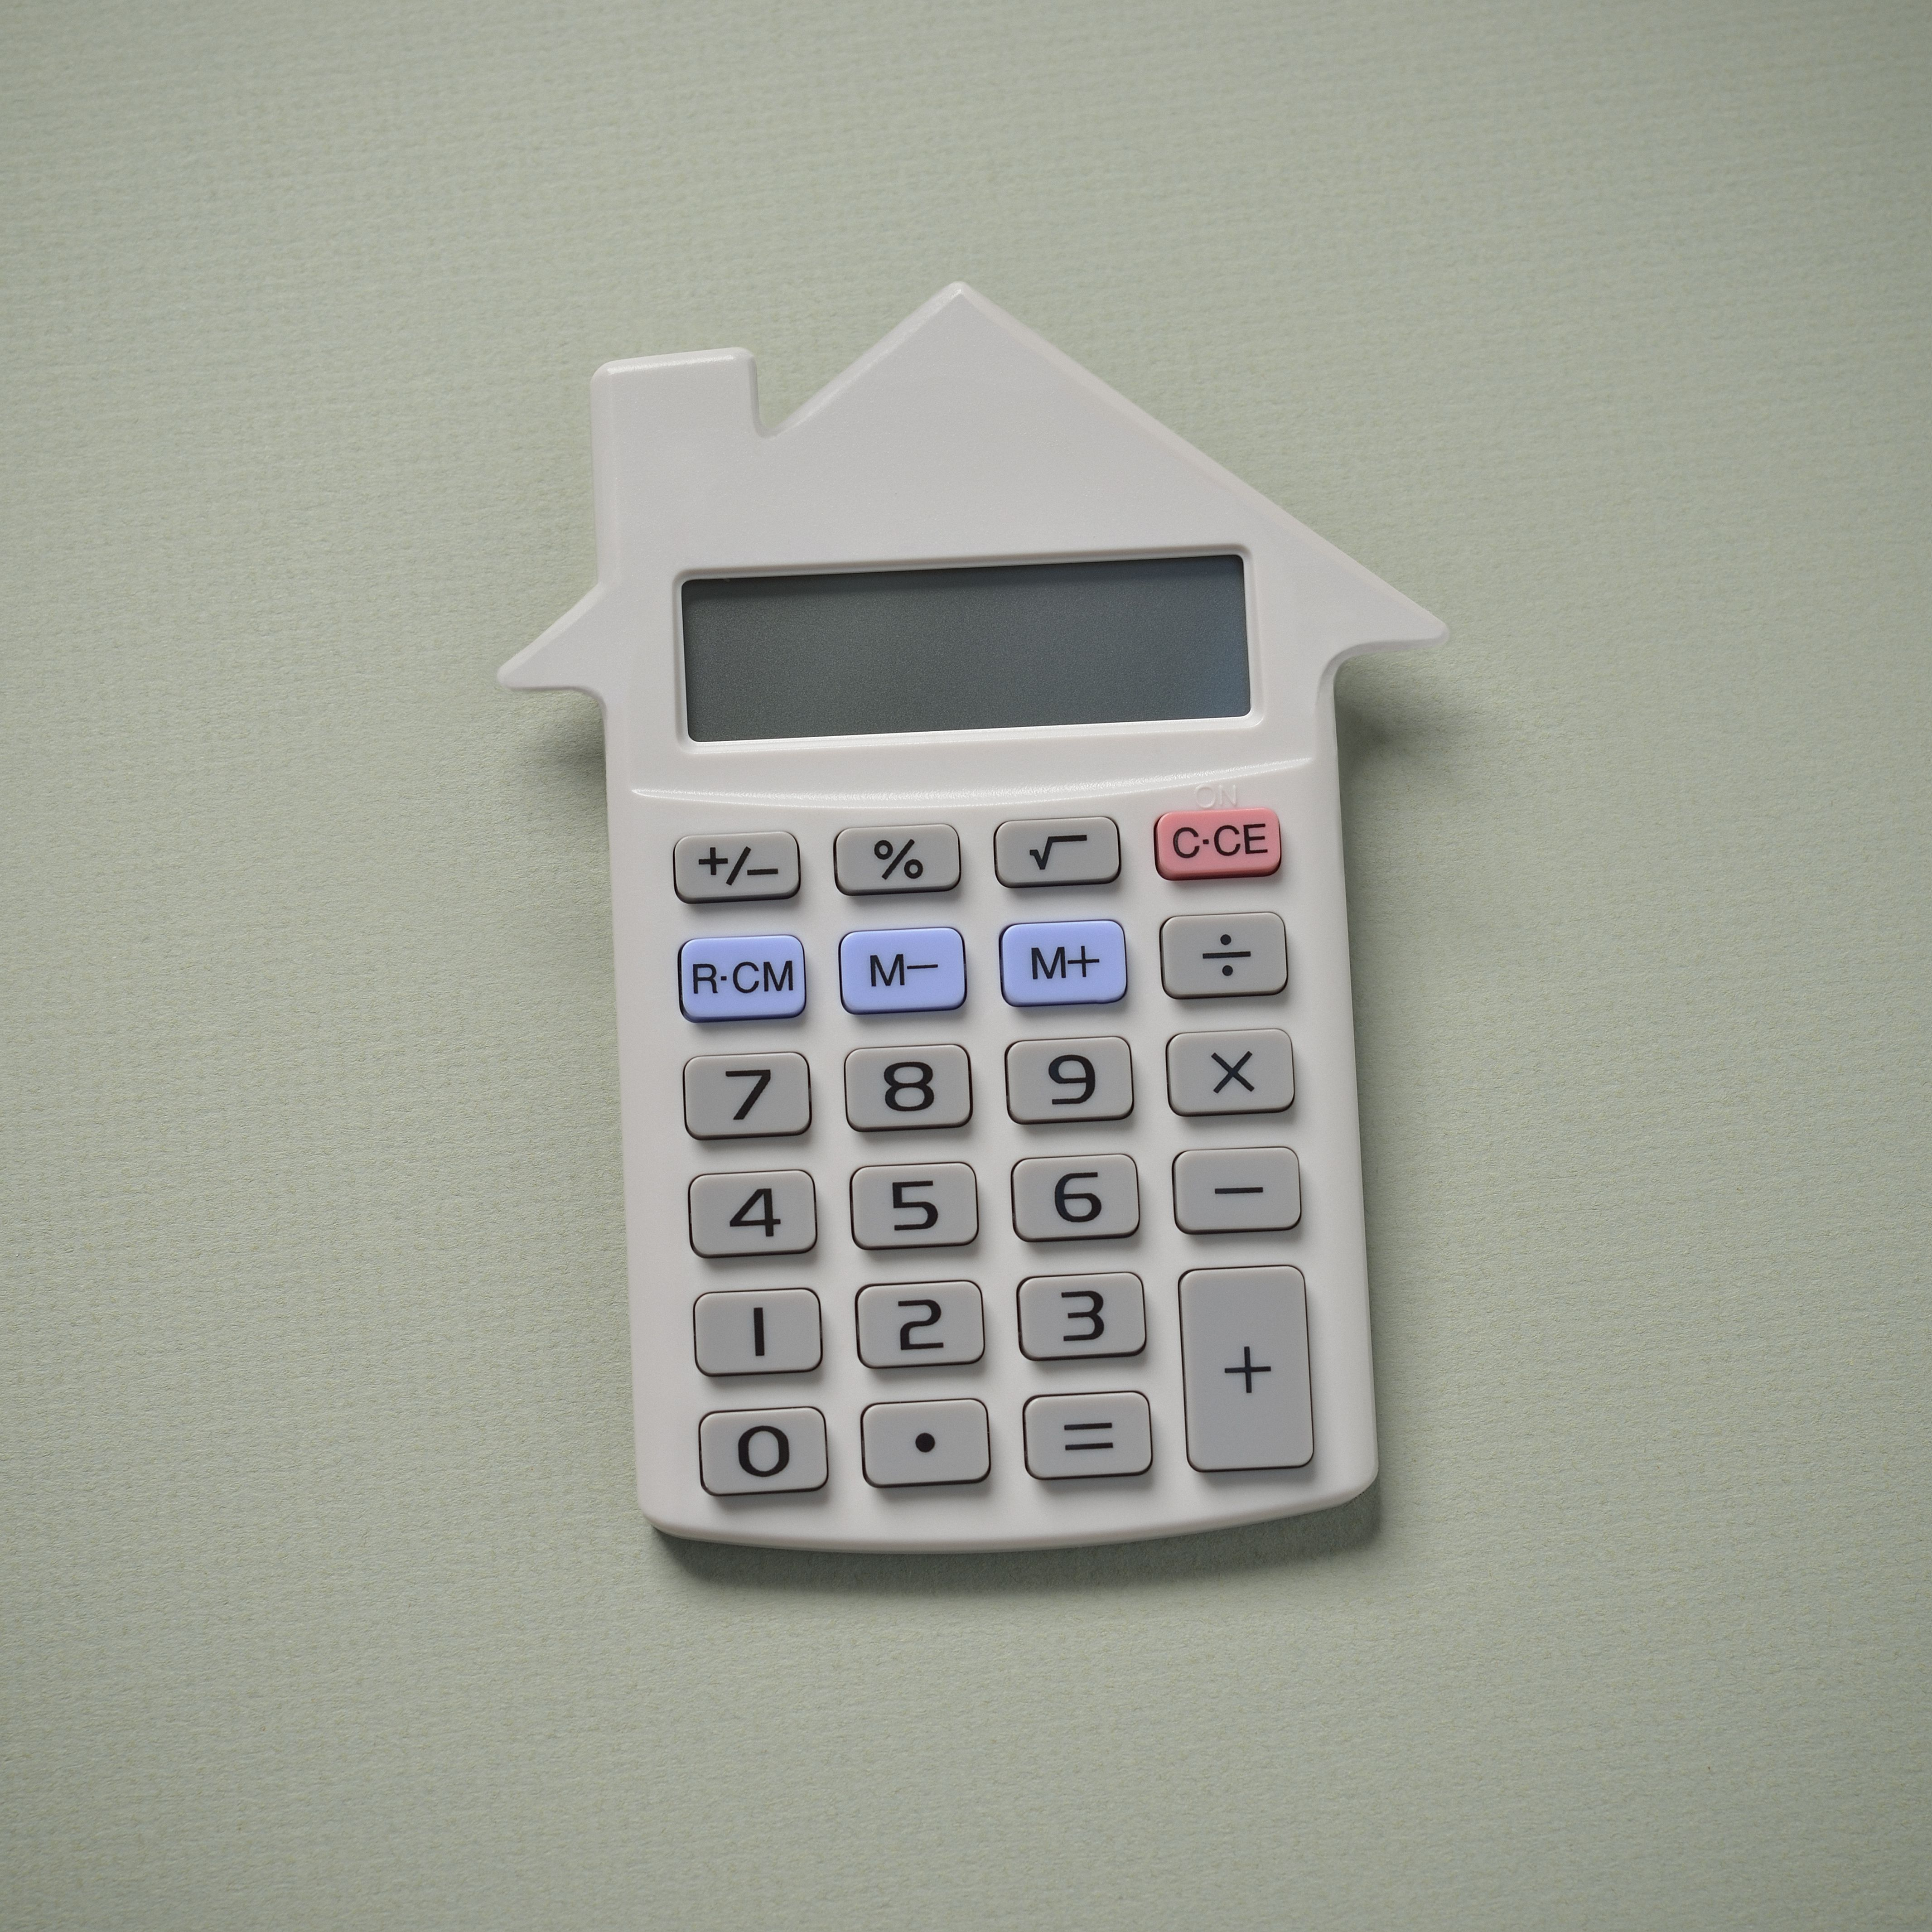 Mortgage Calculator With Taxes And Insurance Spreadsheet In See How To Calculate Mortgage Payments: Fixed, Variable, And More